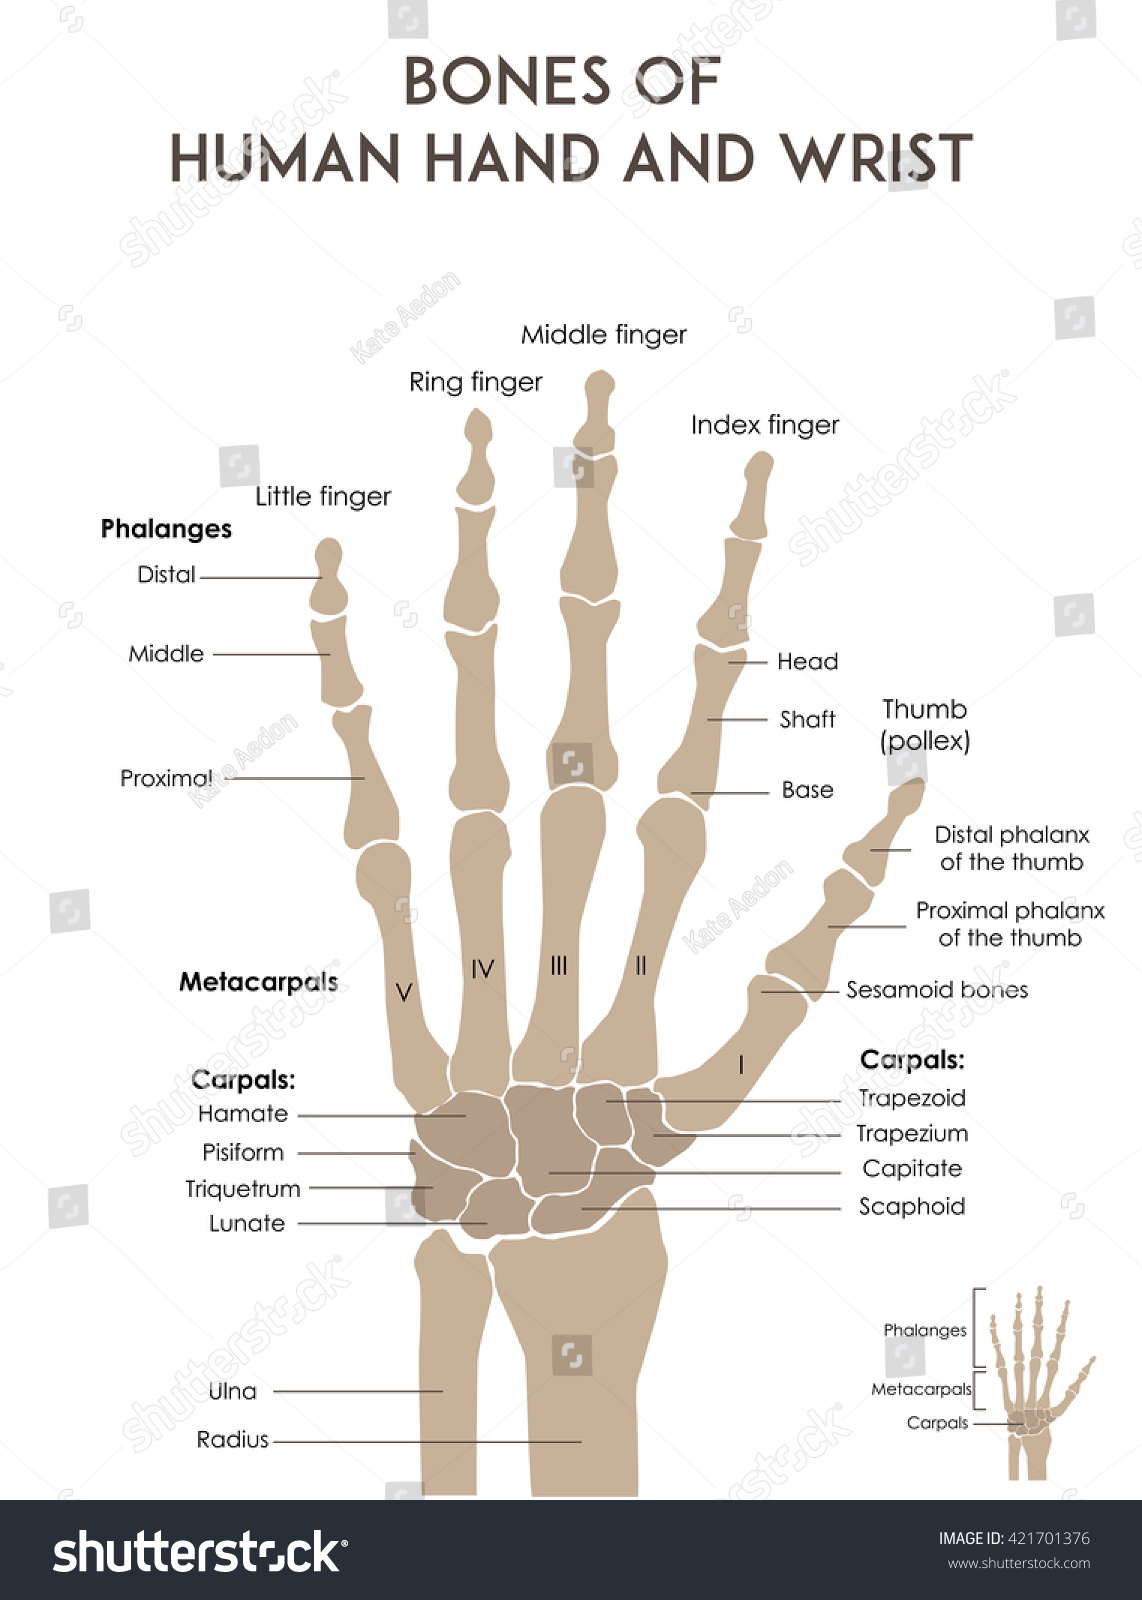 Bones Human Hand Wrist Medically Accurate Stockillustration